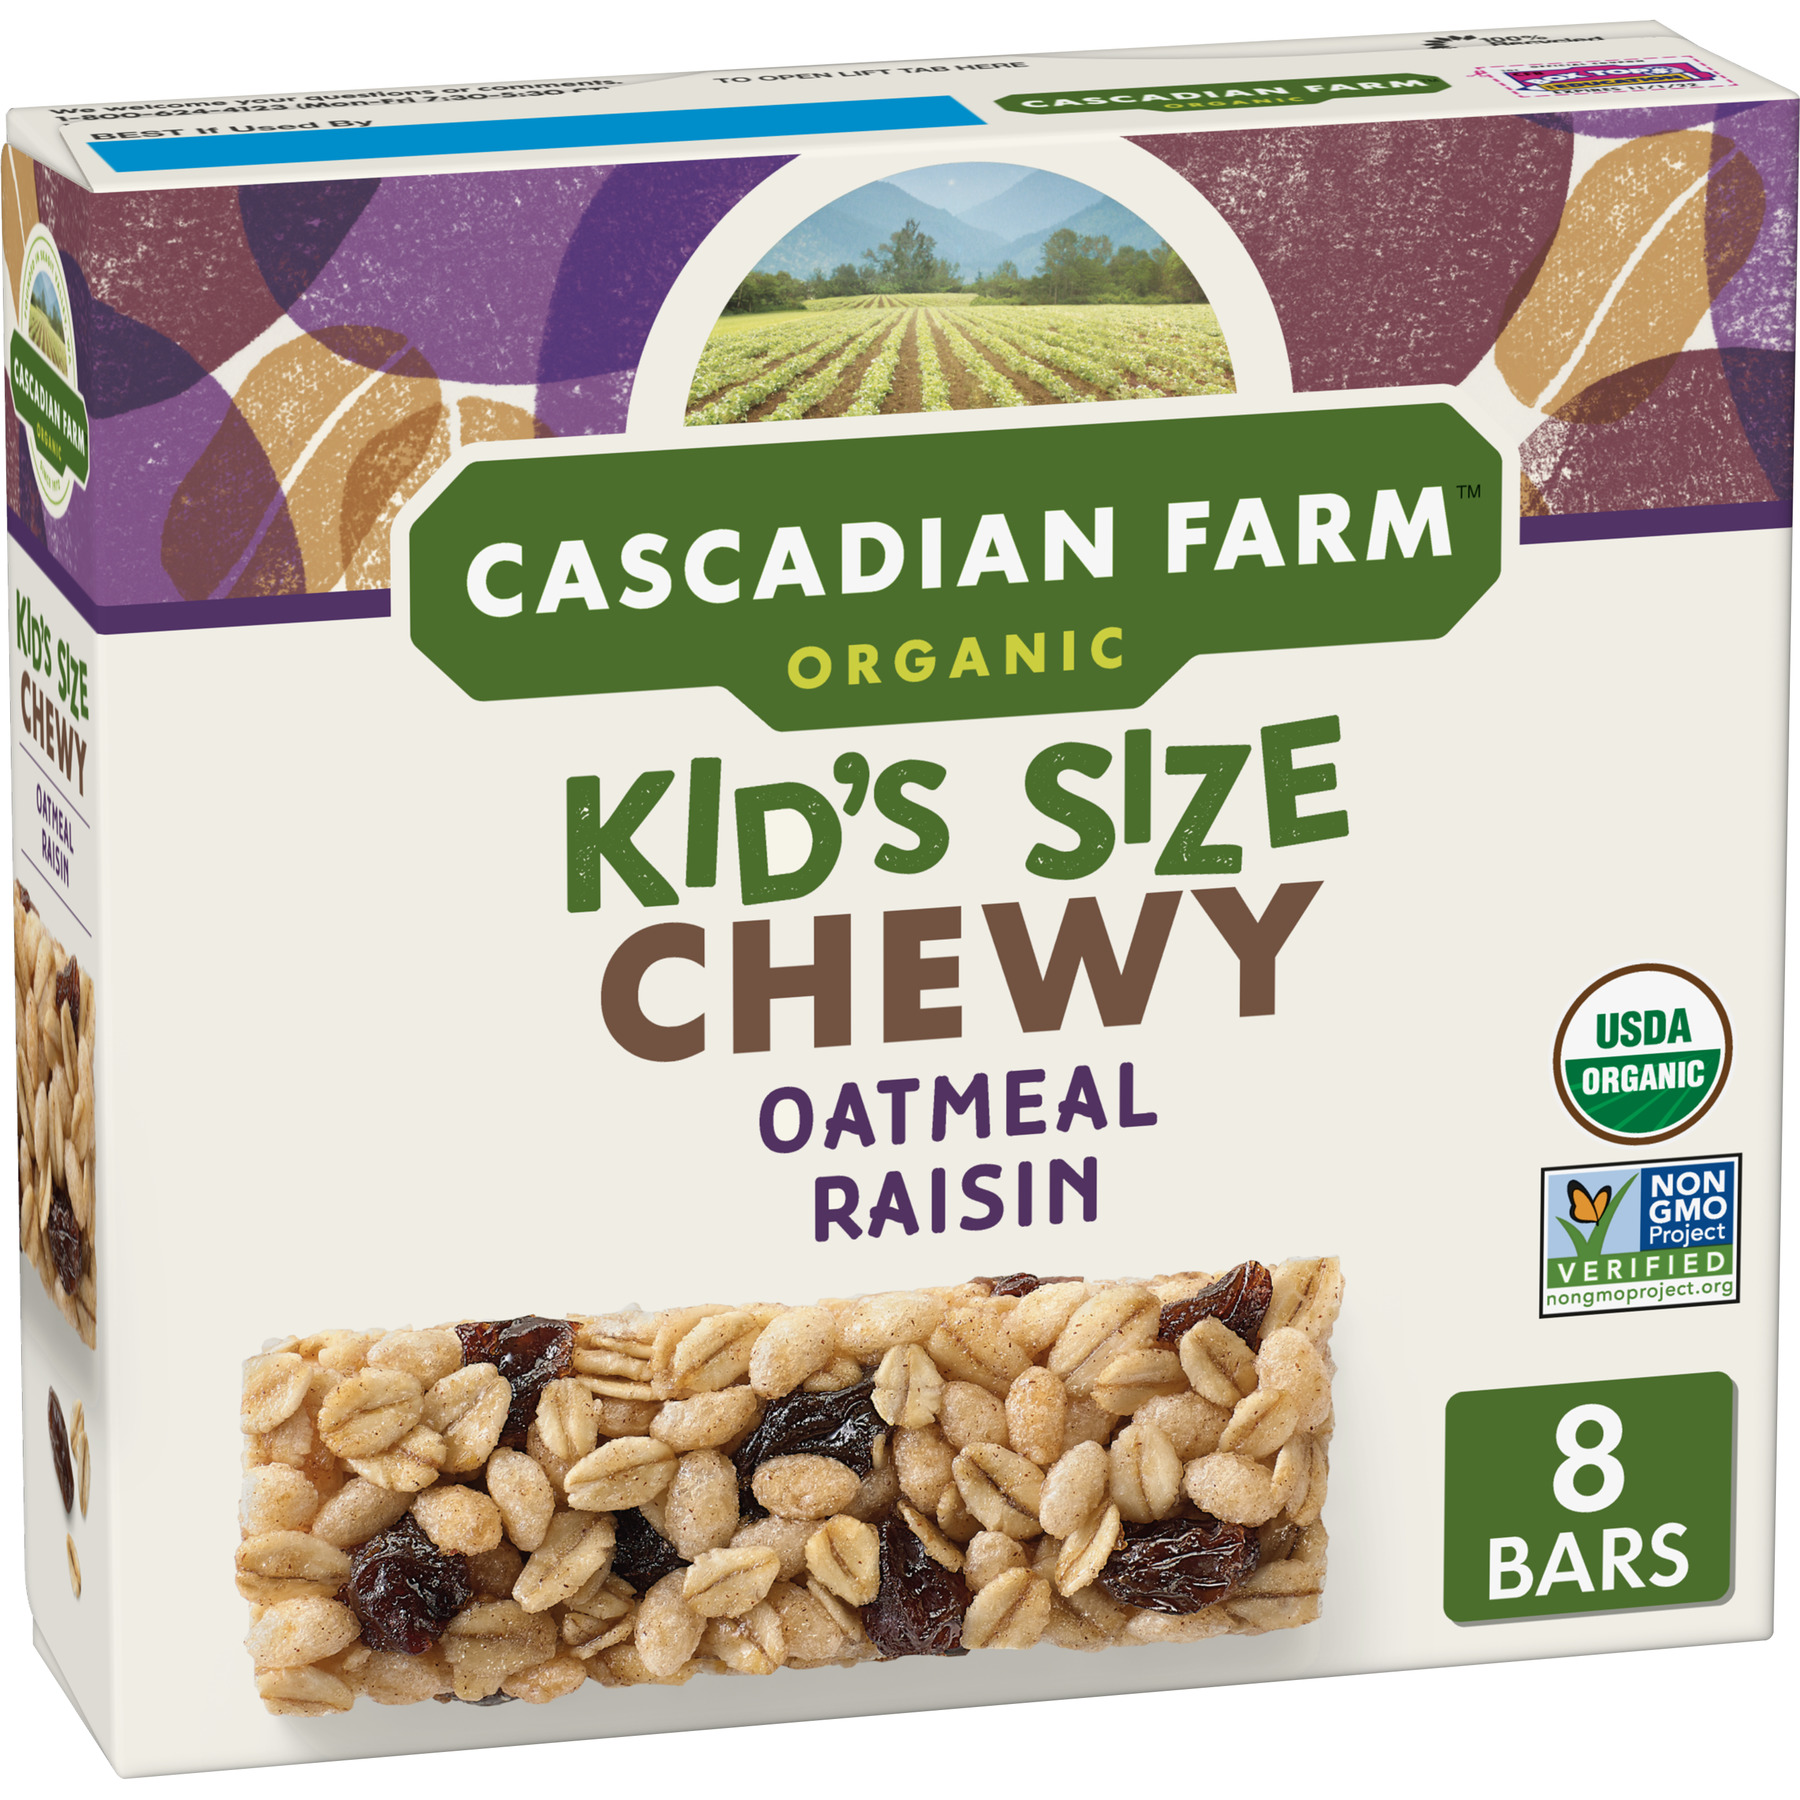 Cascadian Farm Organic Granola Bars Oatmeal Raisin Chewy 8 Bars